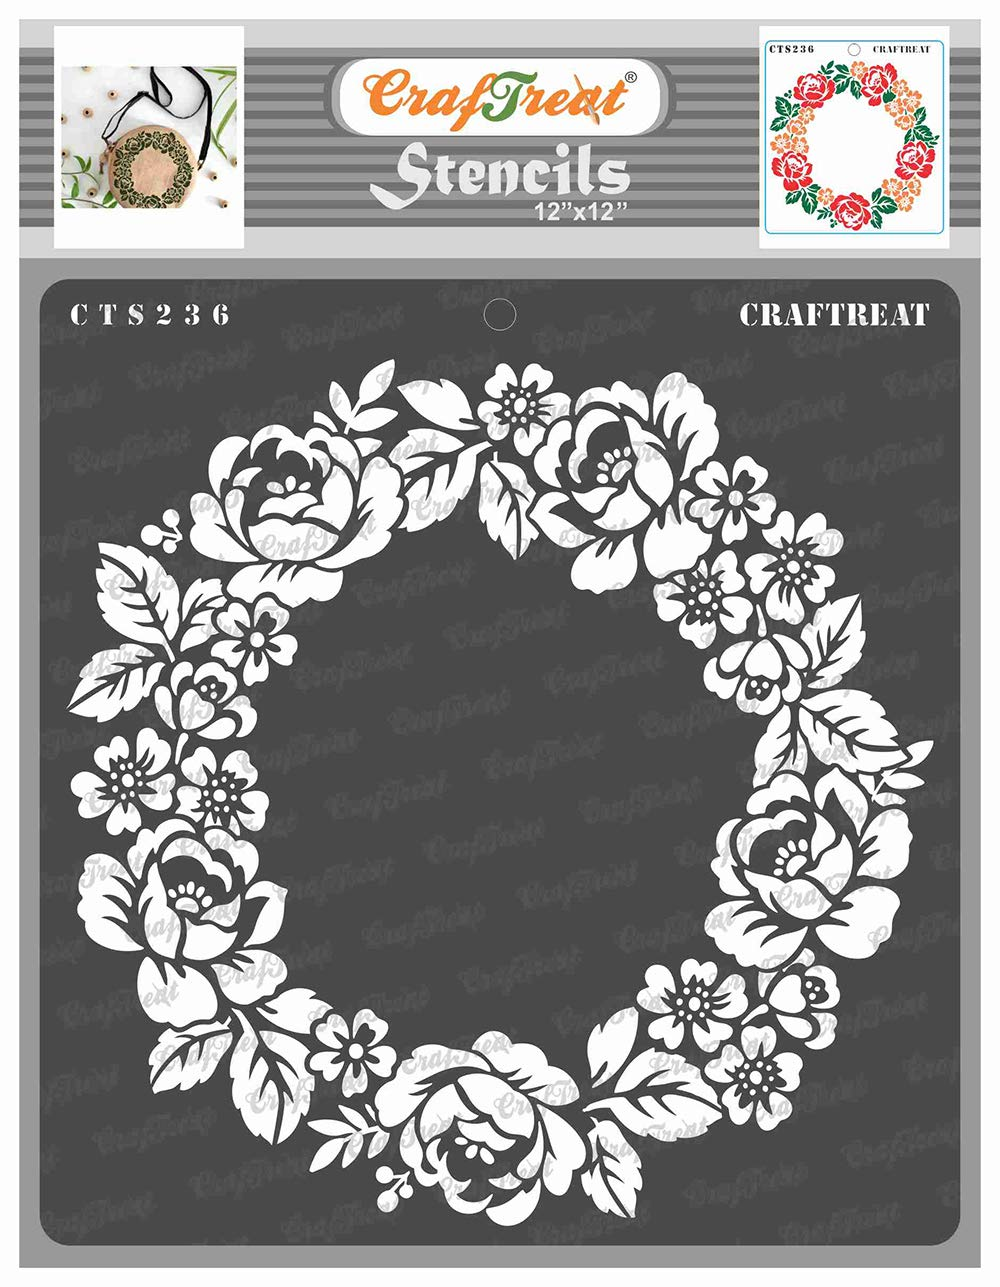 CrafTreat Flower Stencils for Painting on Wood, Canvas, Paper, Fabric, Floor, Wall and Tile - Rose Wreath - 12x12 Inches - Reusable DIY Art and Craft Stencils for Painting Flowers - Rose Stencils